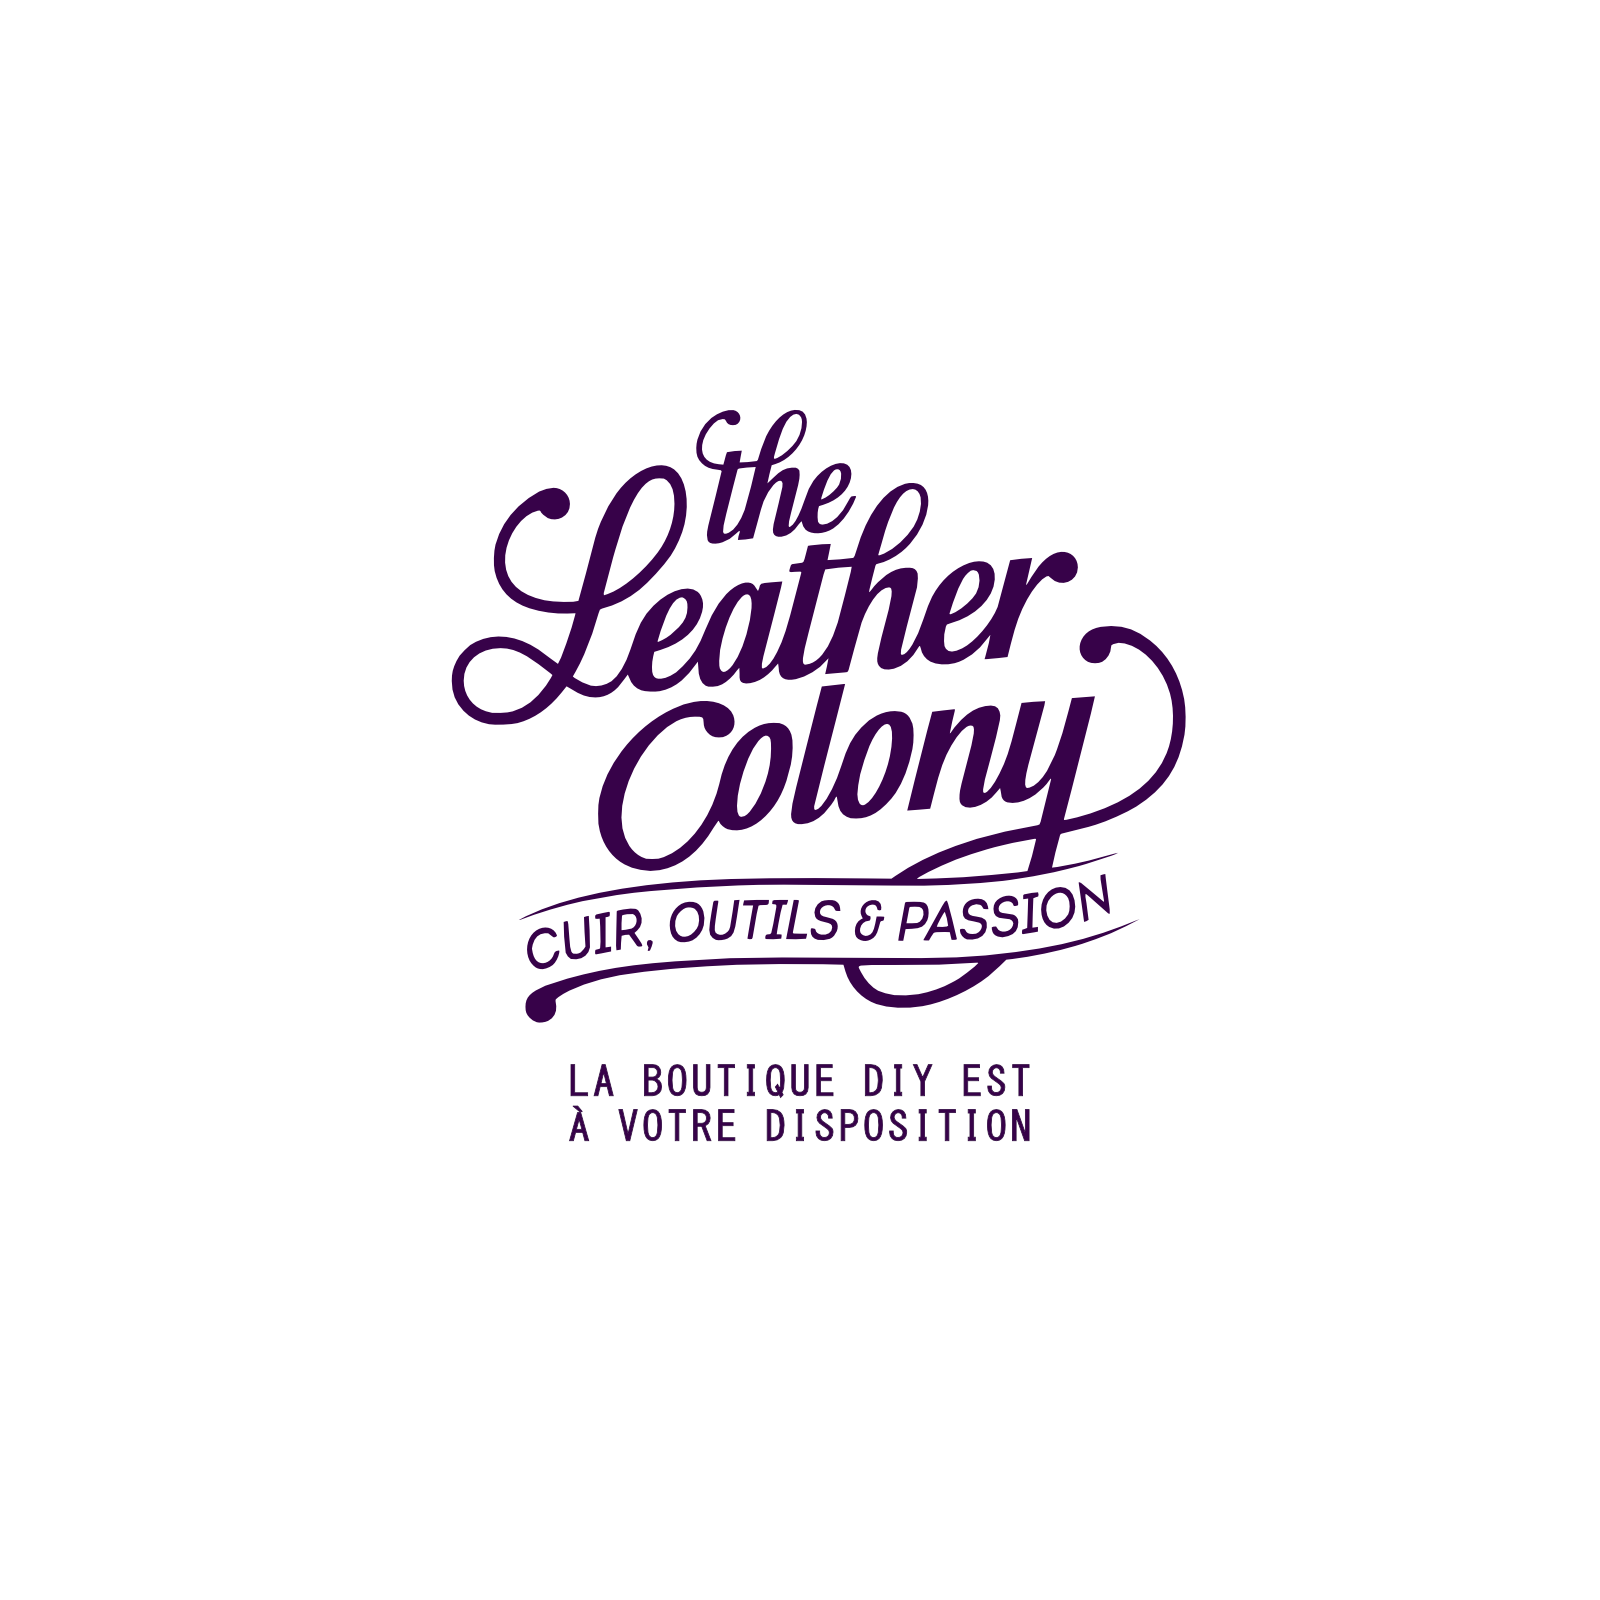 THE LEATHER COLONY